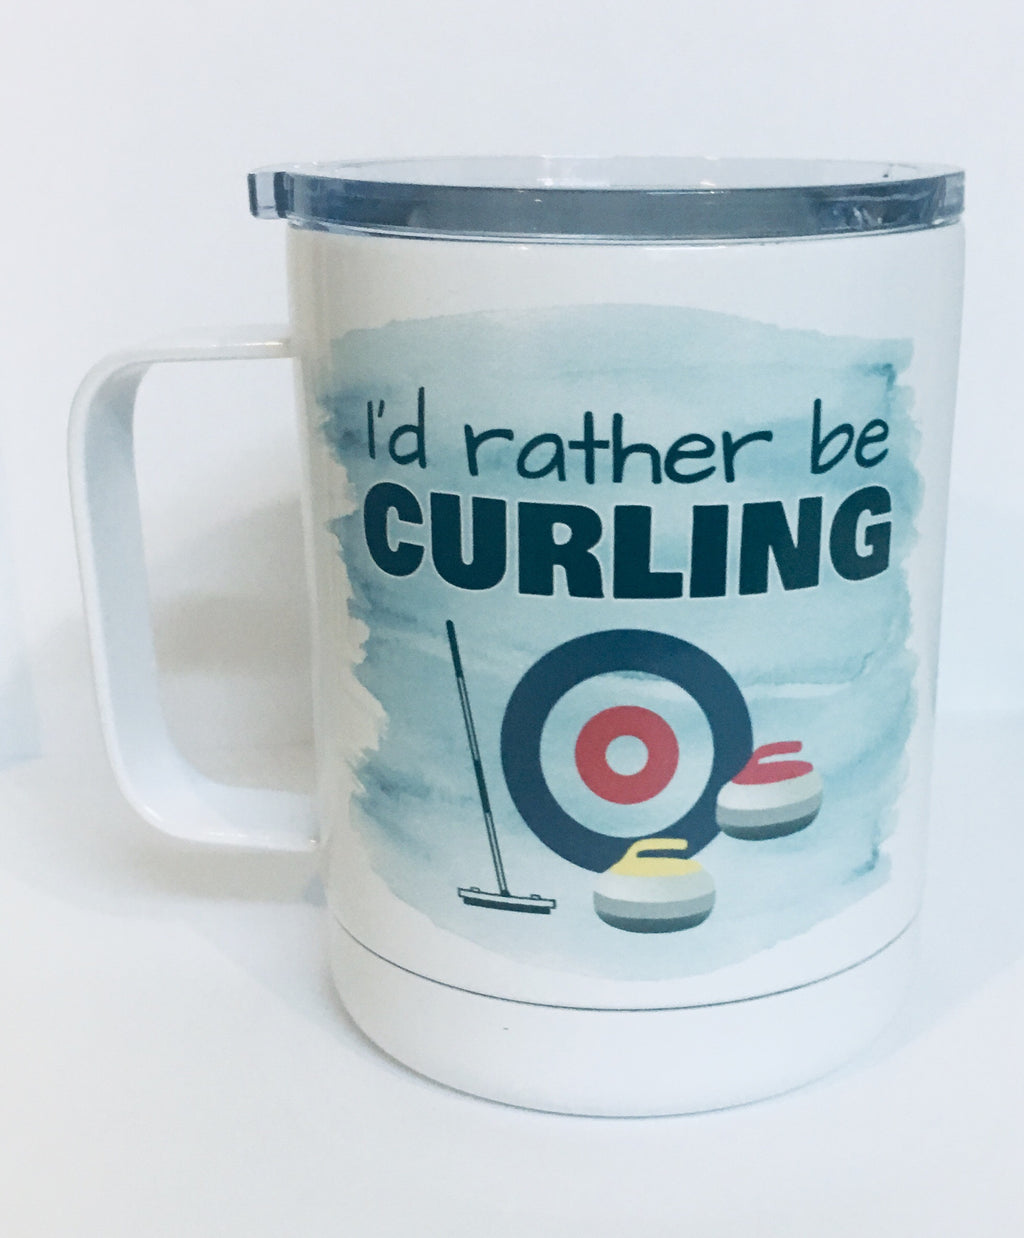 ID RATHER BE CURLING